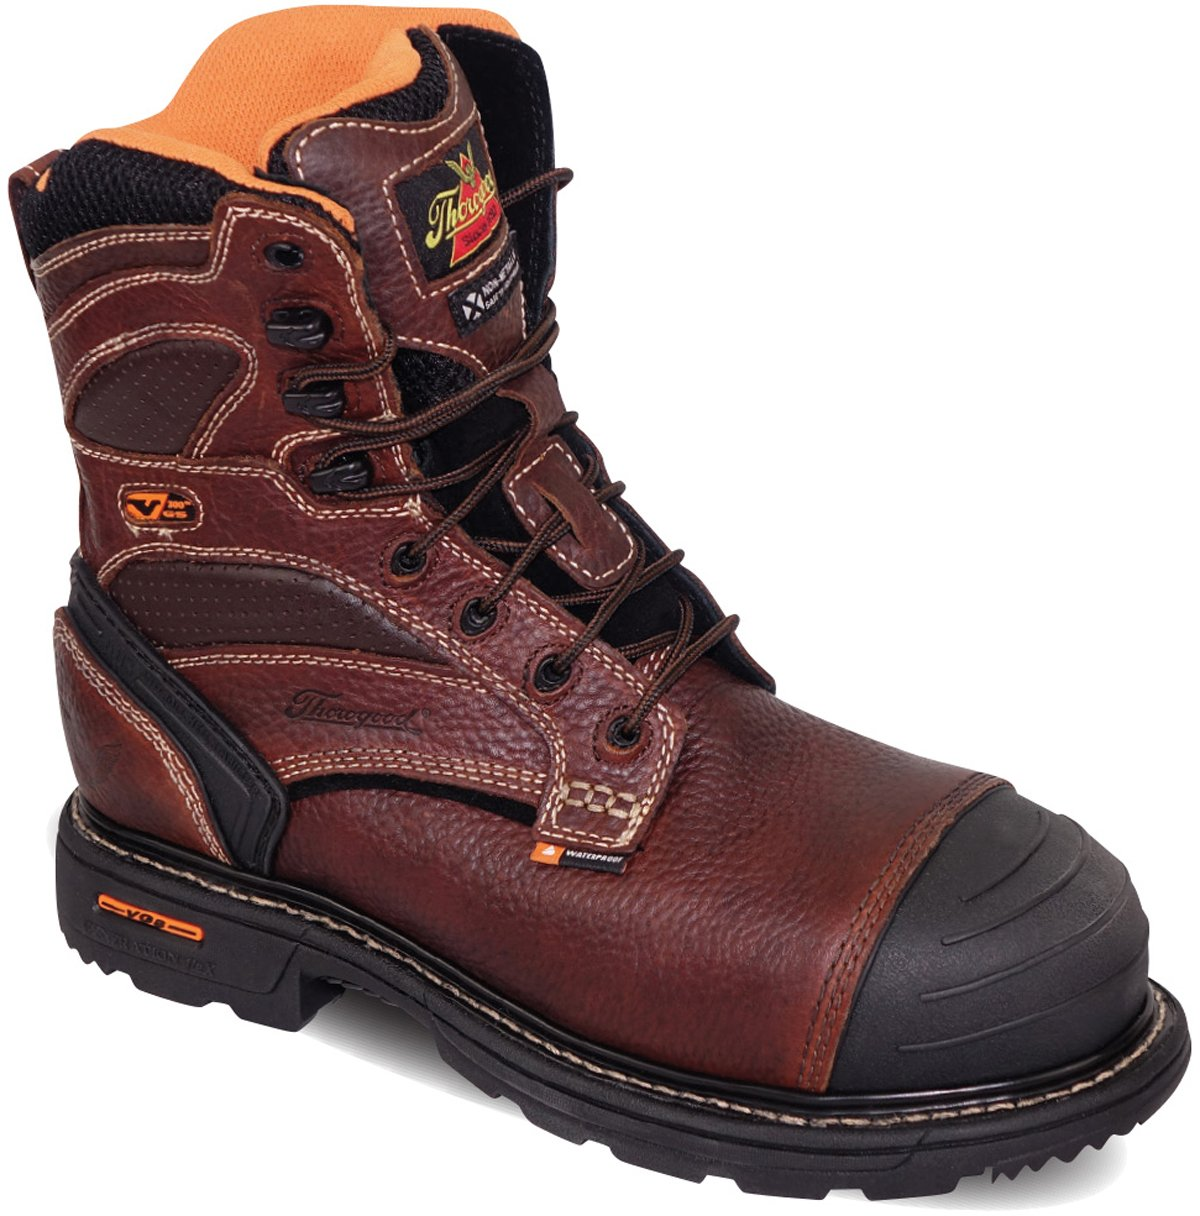 Thorogood/Mens Gen-flex3/8 Insulated Waterproof Composite Safety Toe Boot